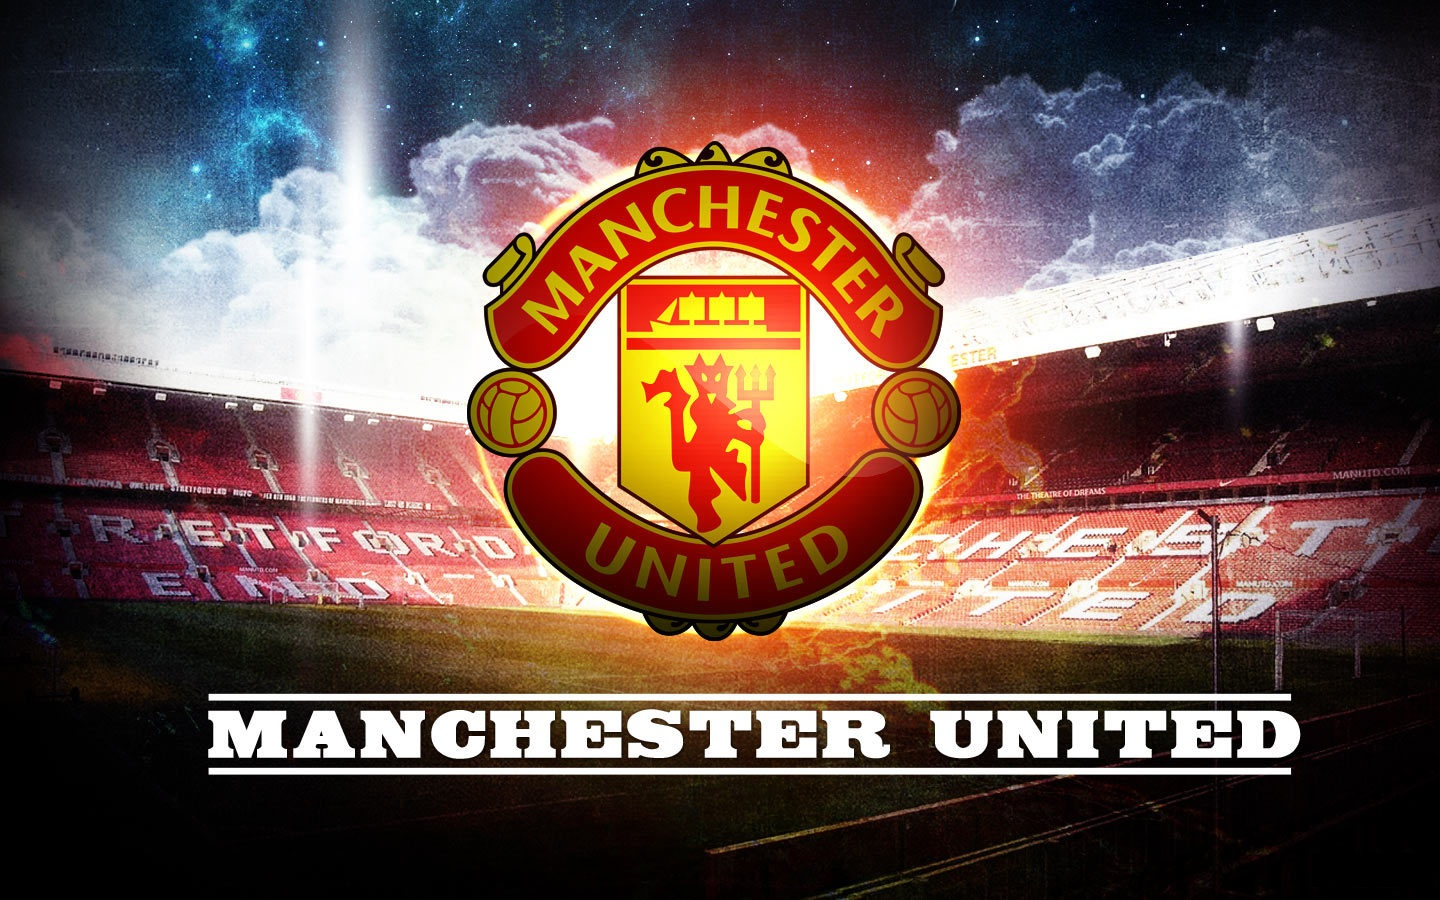 Manchester united logo wallpapers hd wallpaper 1440x900 voltagebd Image collections